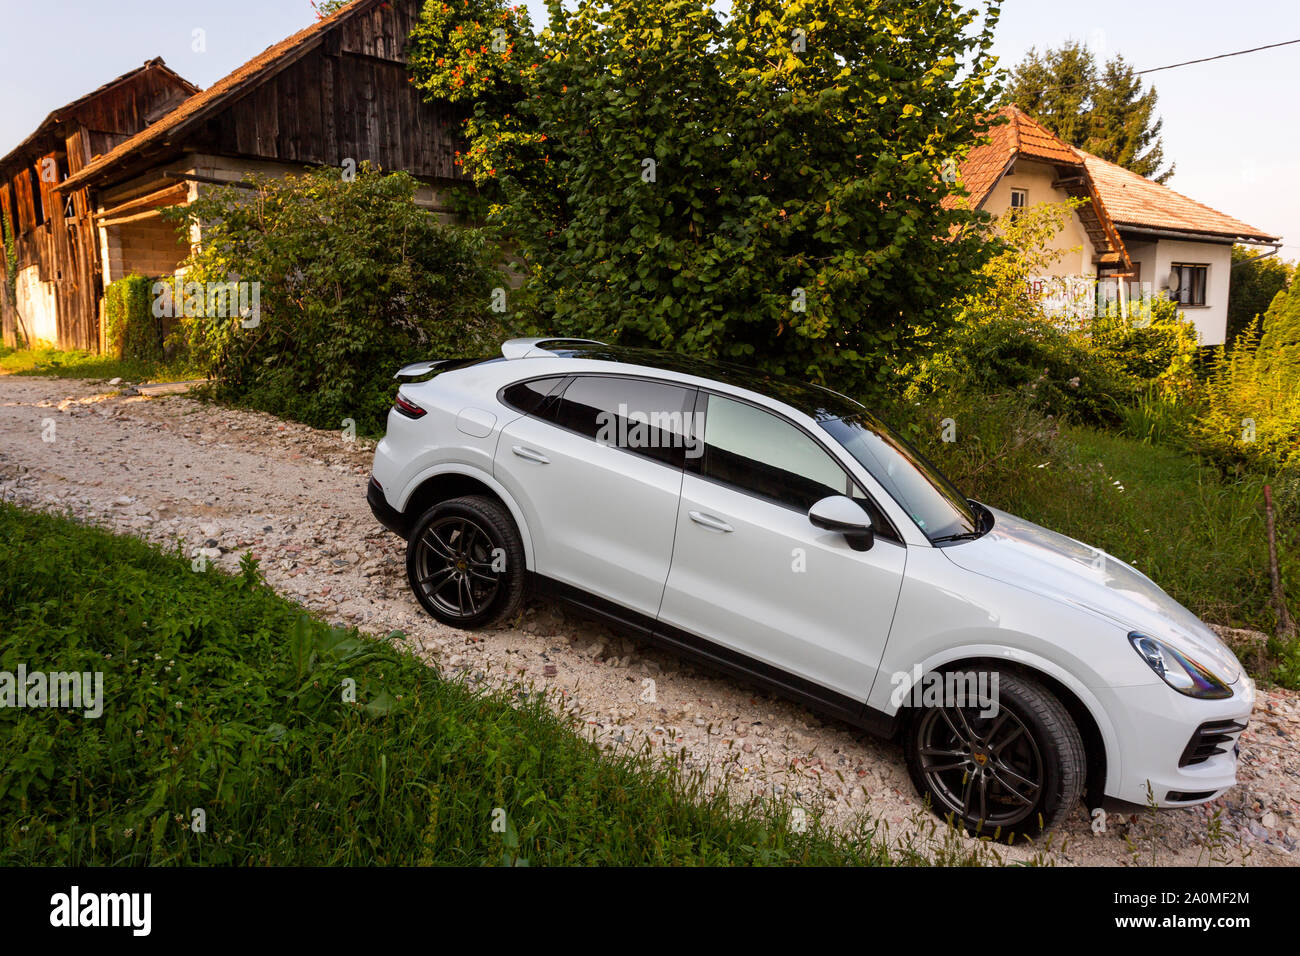 Slovenia Ljubljana 31 August 2019 White Suv Porsche Cayenne Coupe Turbo S From Stuttgart On Terrain Offroad During Test Drive Stock Photo Alamy